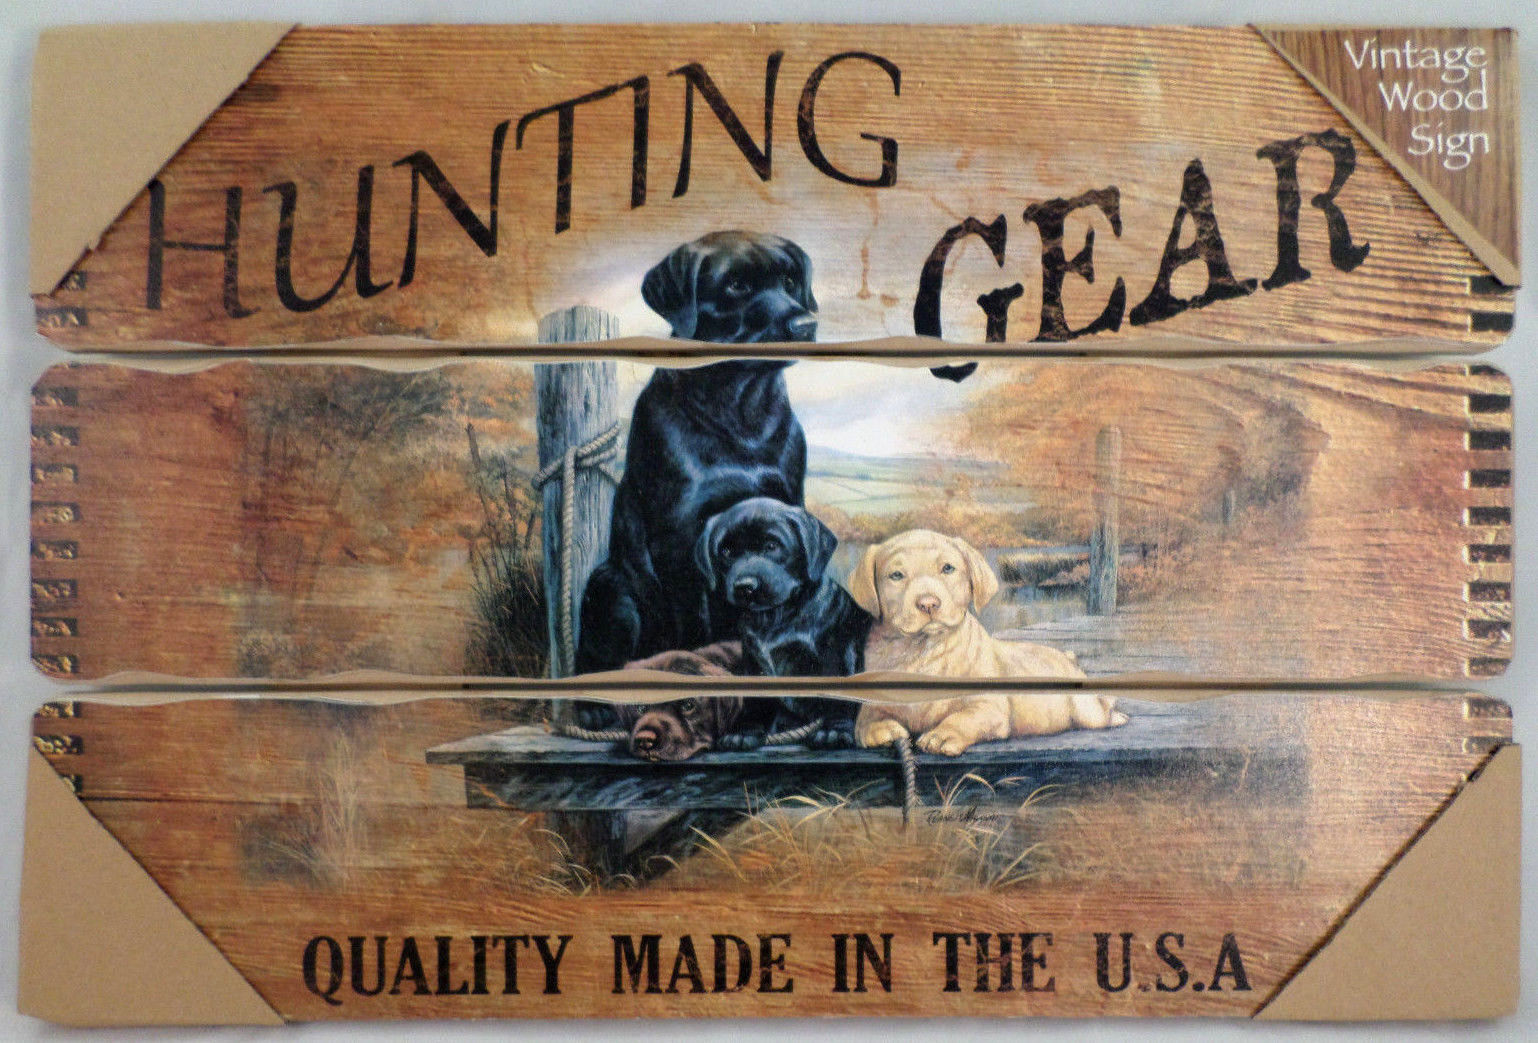 Hunting Gear Quality Made In The USA Vintage Inspired Wooden Wall Sign Plaque